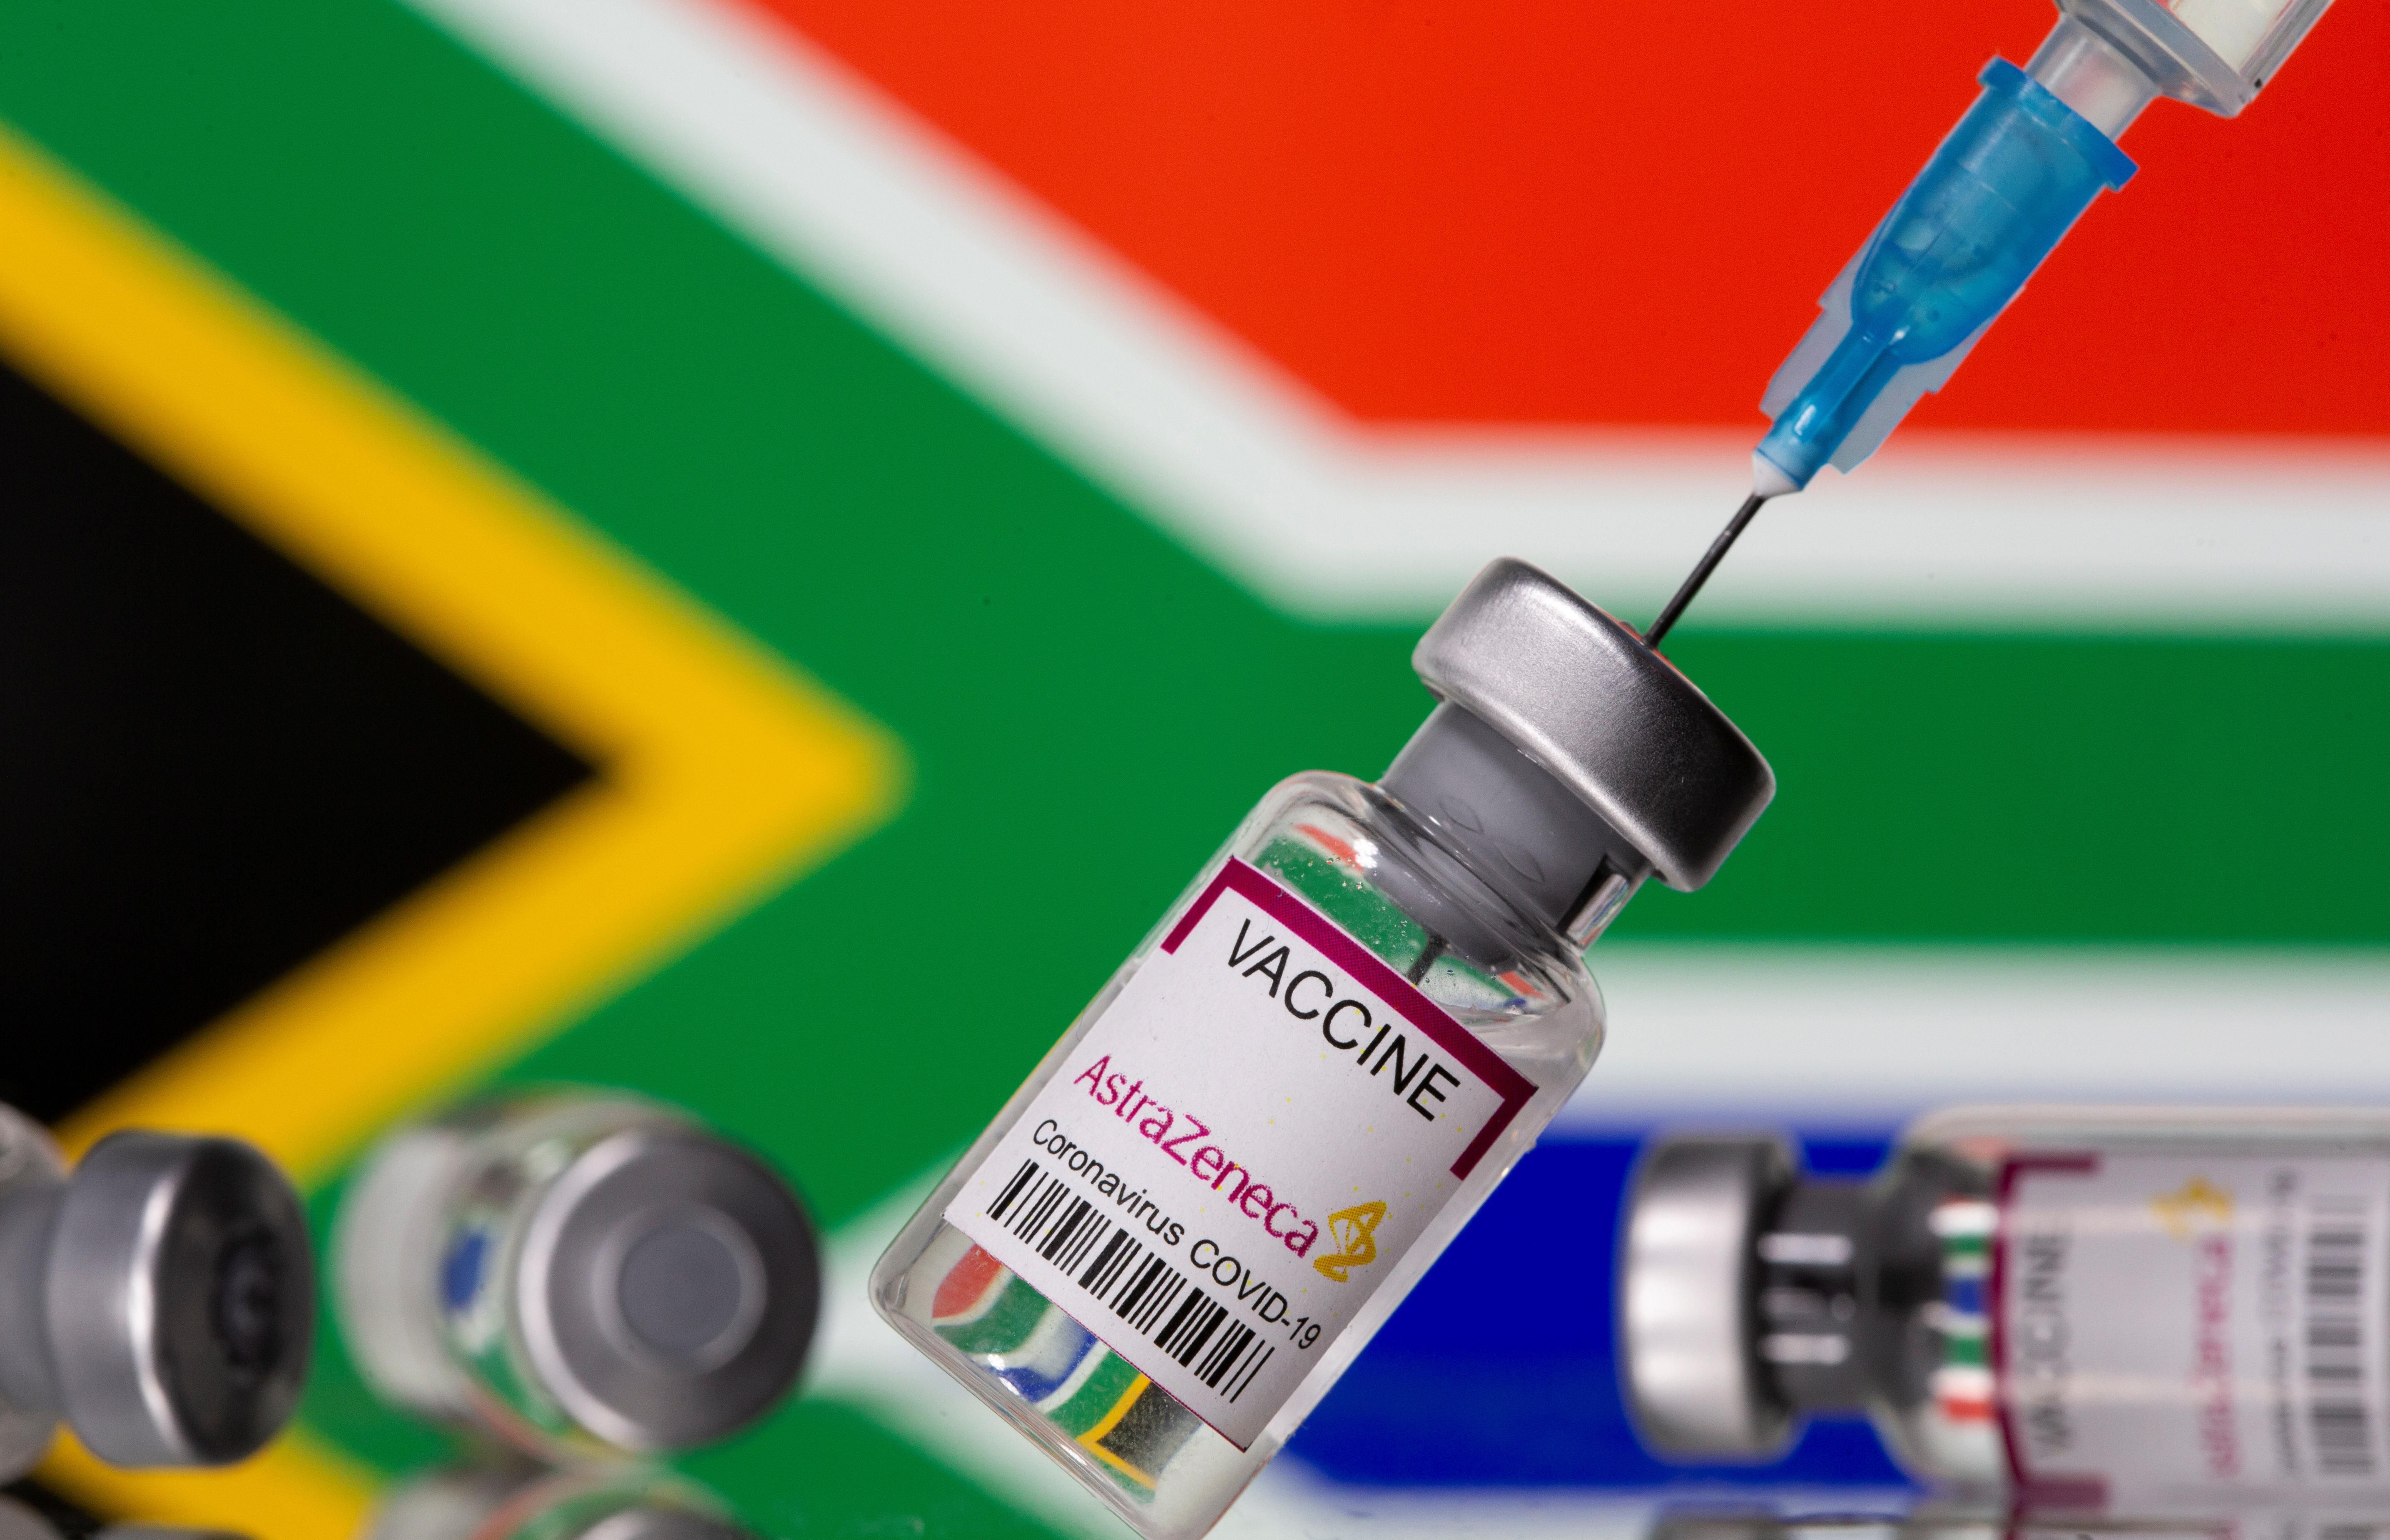 """Vials labelled """"Astra Zeneca COVID-19 Coronavirus Vaccine"""" and a syringe are seen in front of a displayed South Africa flag, in this illustration photo taken March 14, 2021."""